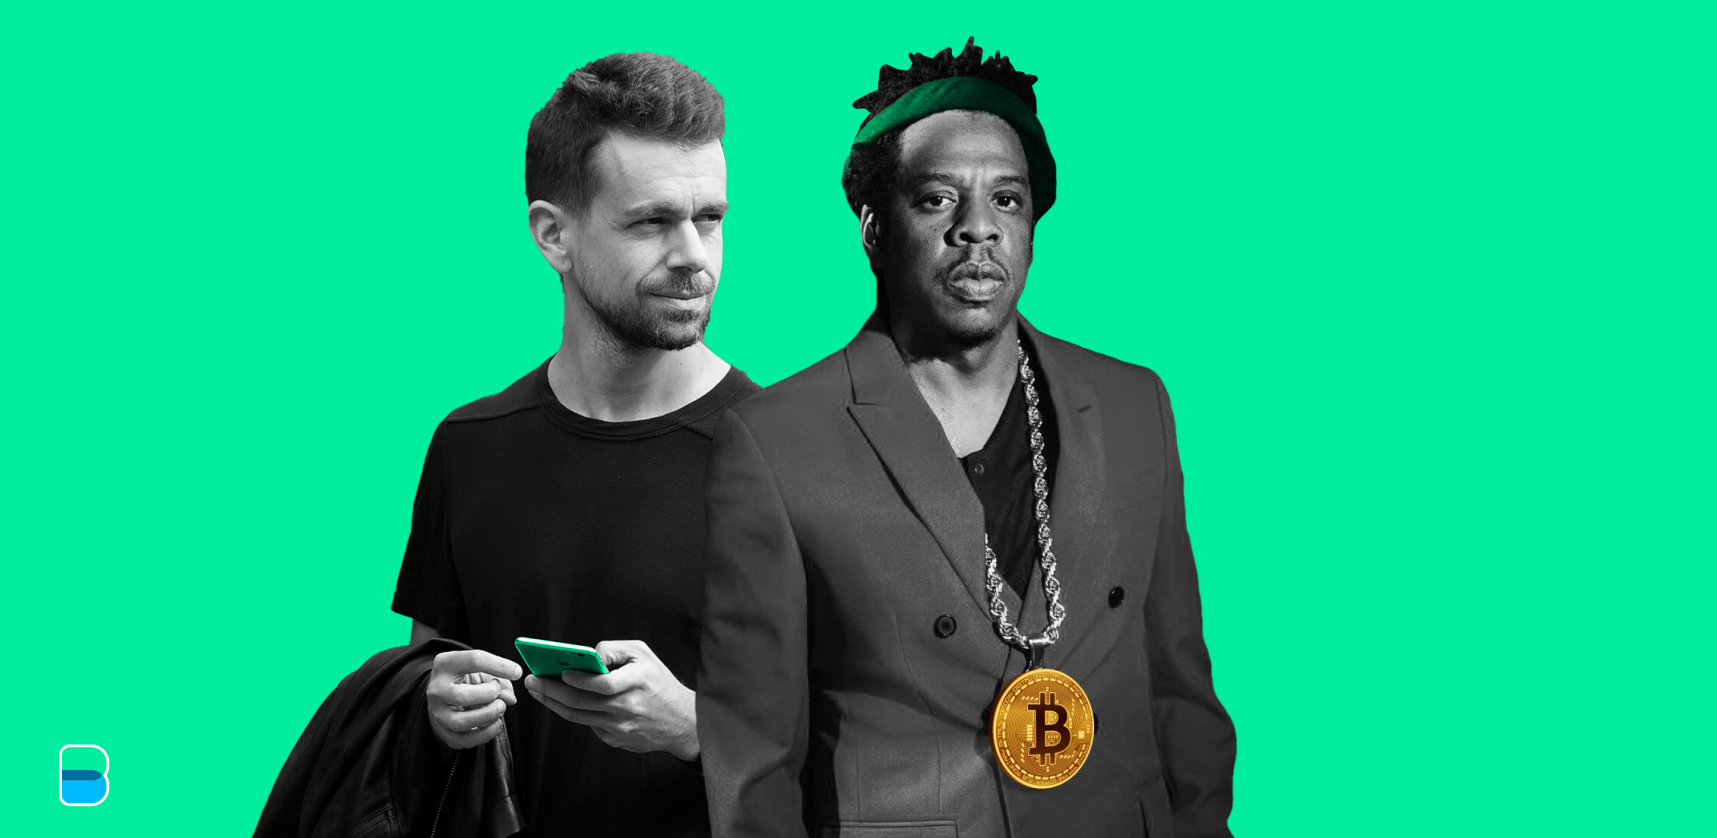 Jay-Z and Jack Dorsey bullish on bitcoin